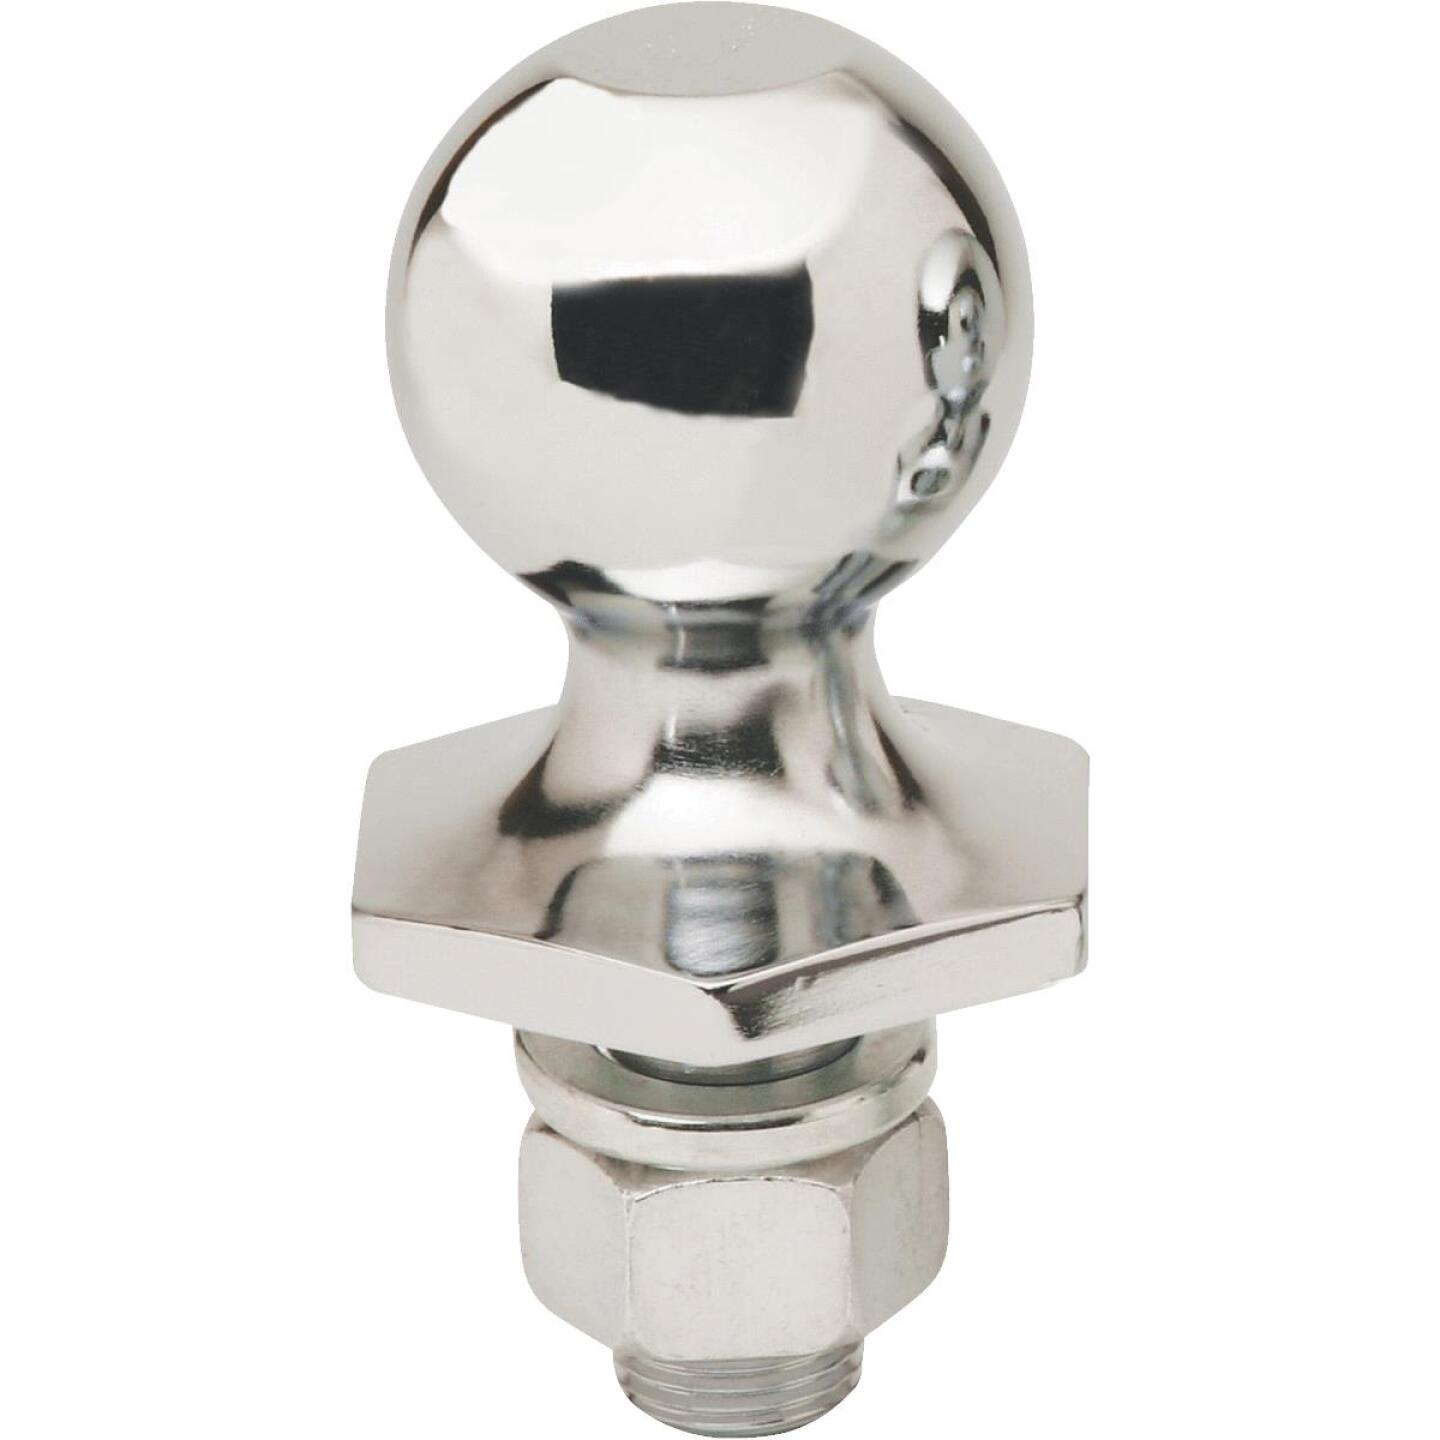 Reese Towpower Class IV Carbon Forged Interlock Hitch Ball, 2 In. Image 1